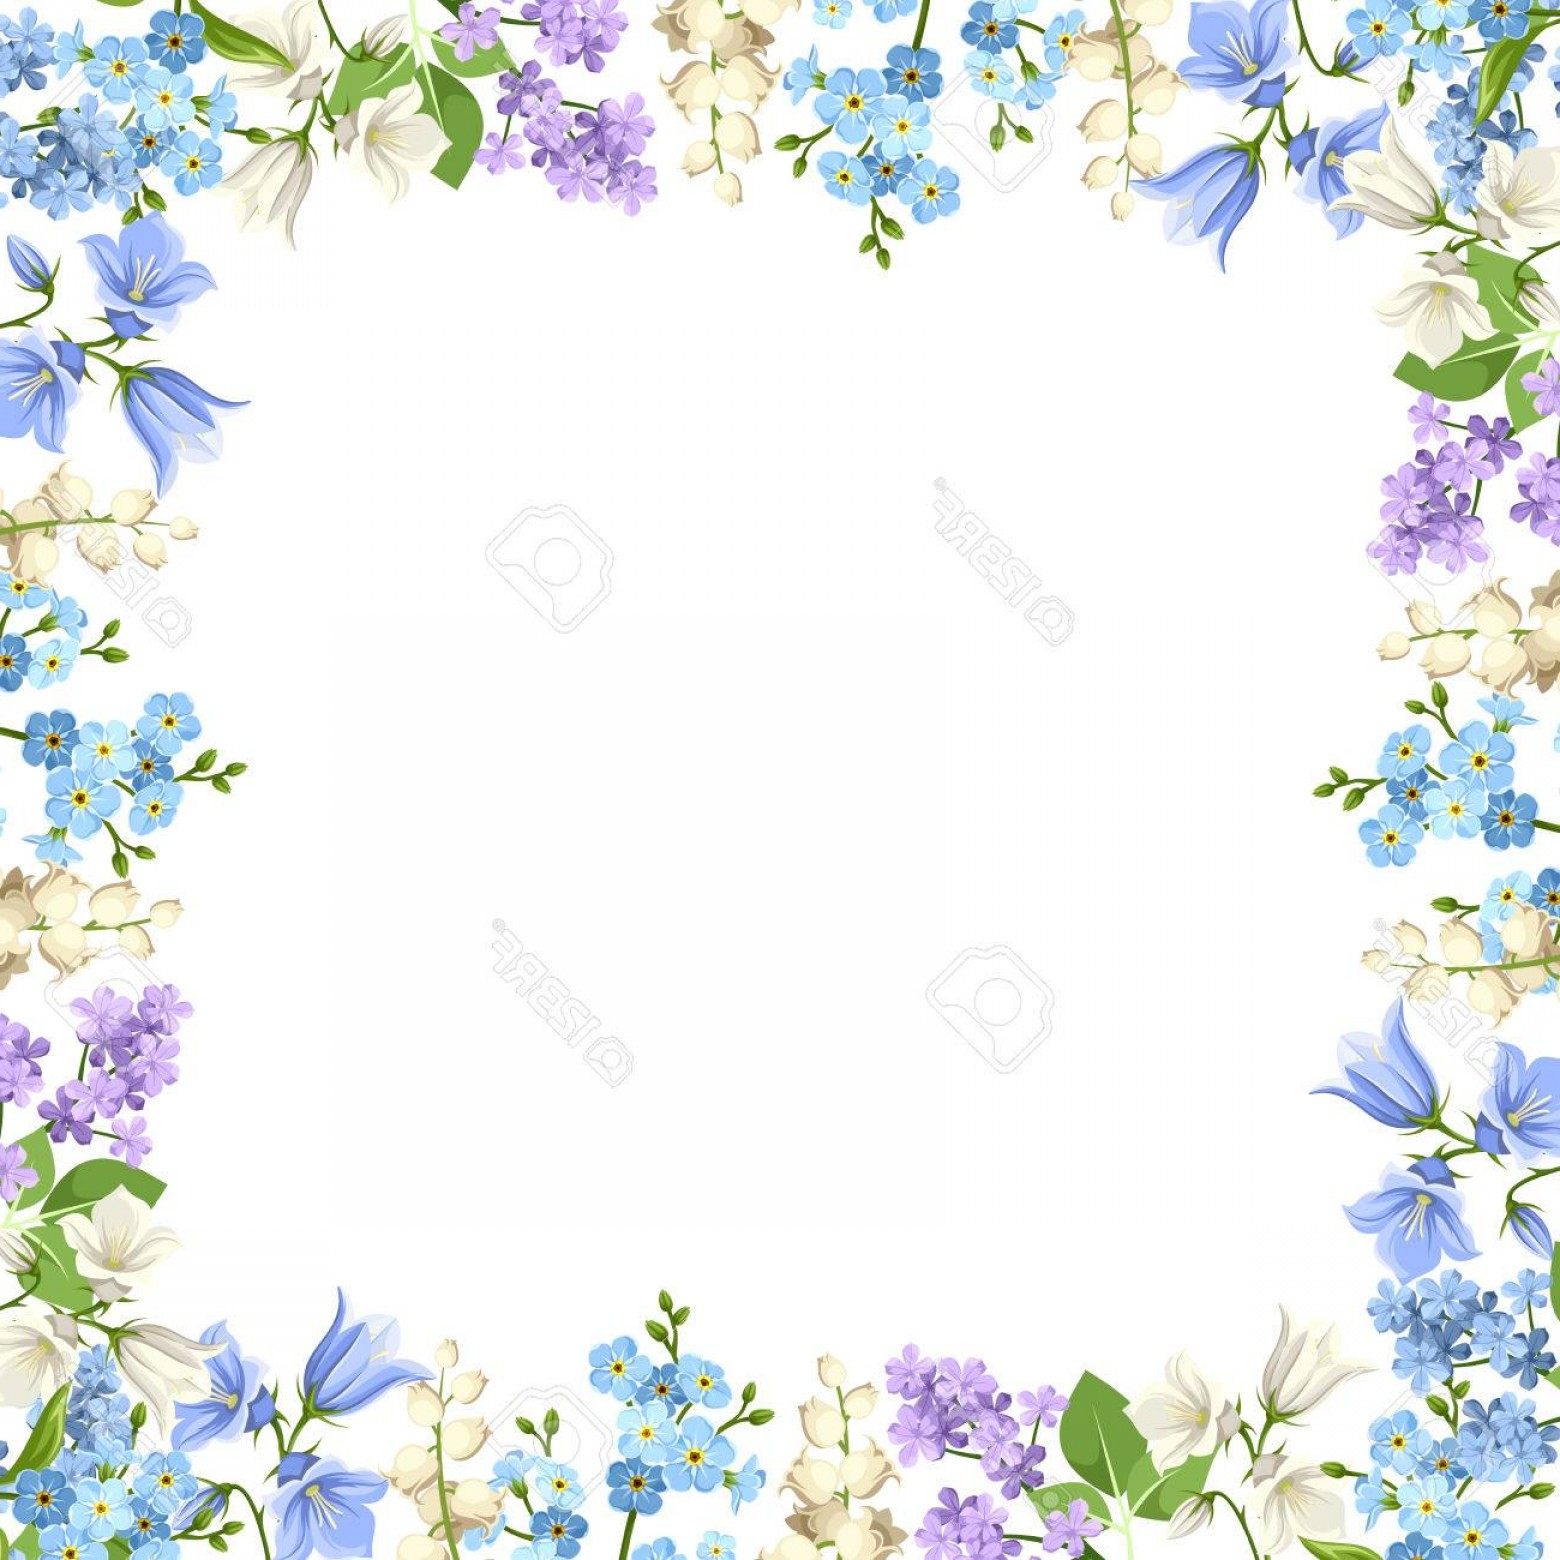 Purple Green And White Vector: Photostock Vector Background With Various Blue Purple And White Flowers And Green Leaves